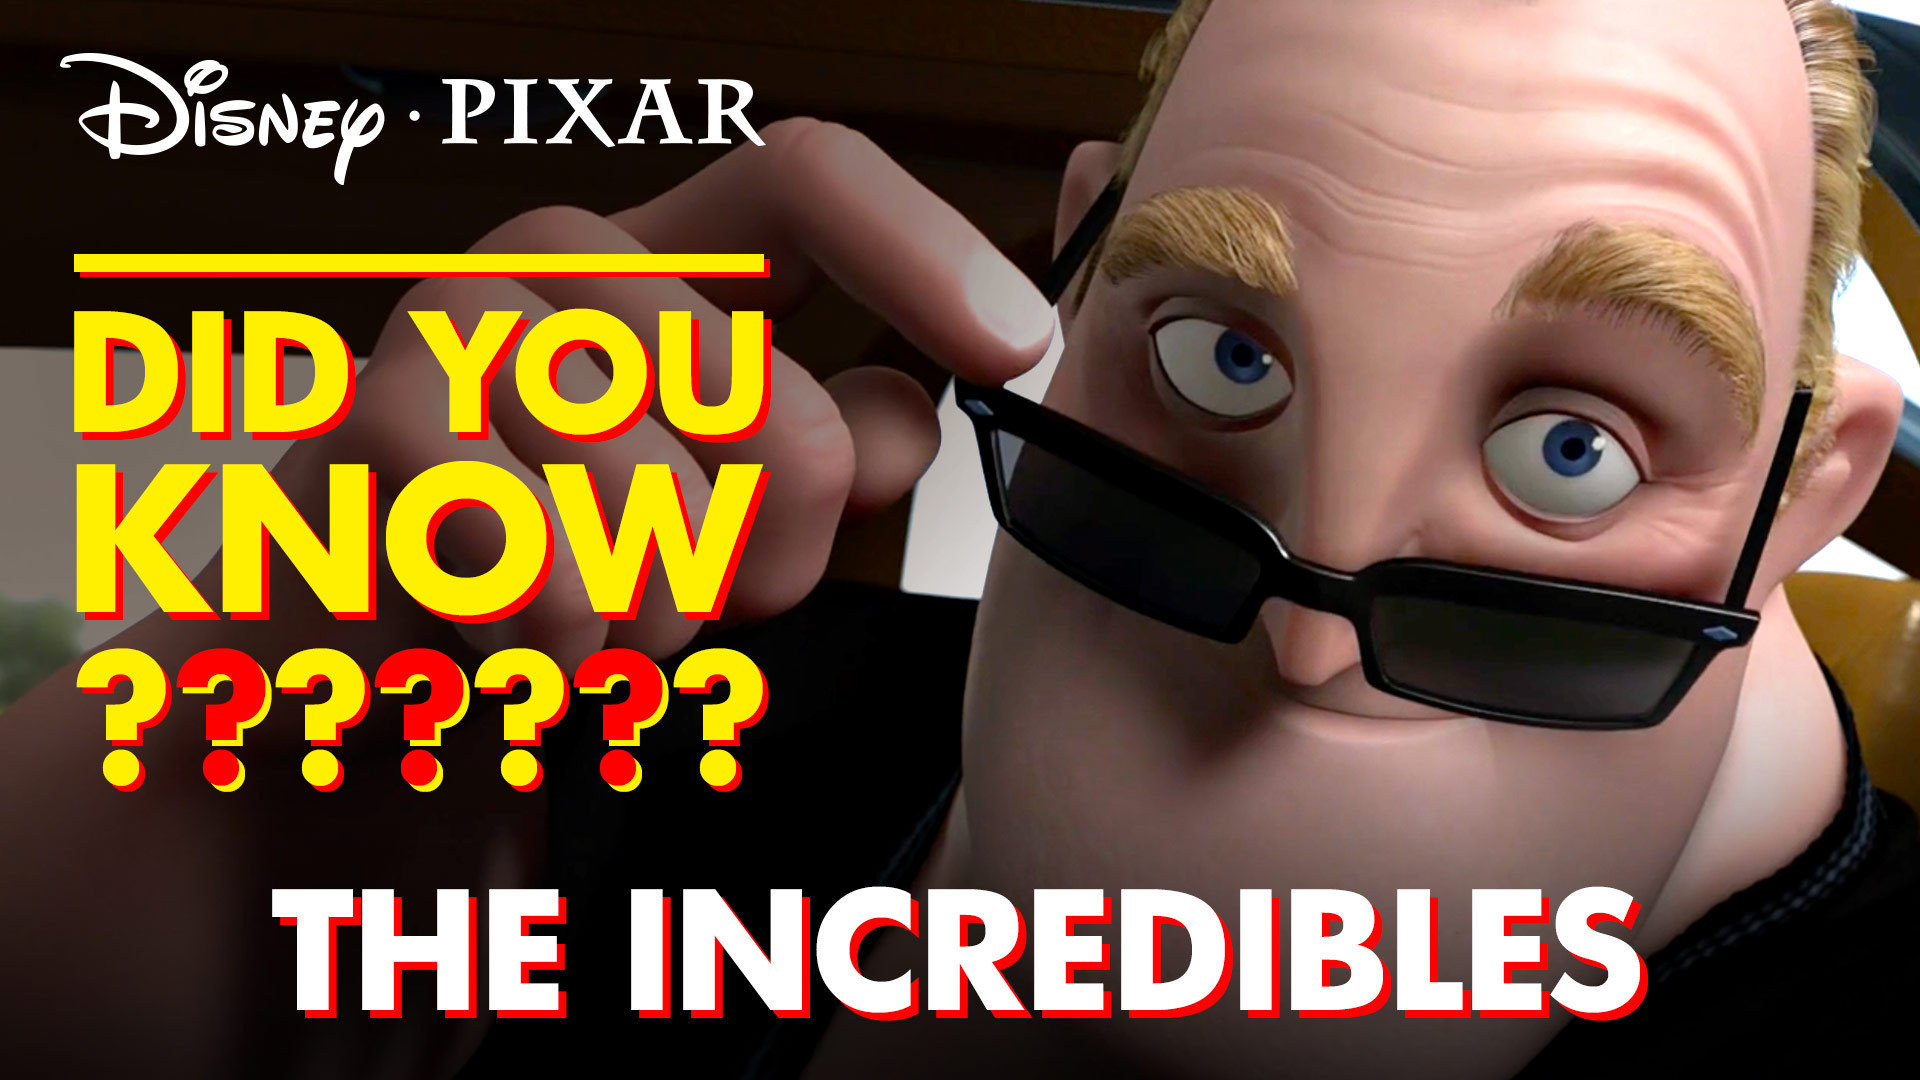 The Incredibles | Disney•Pixar